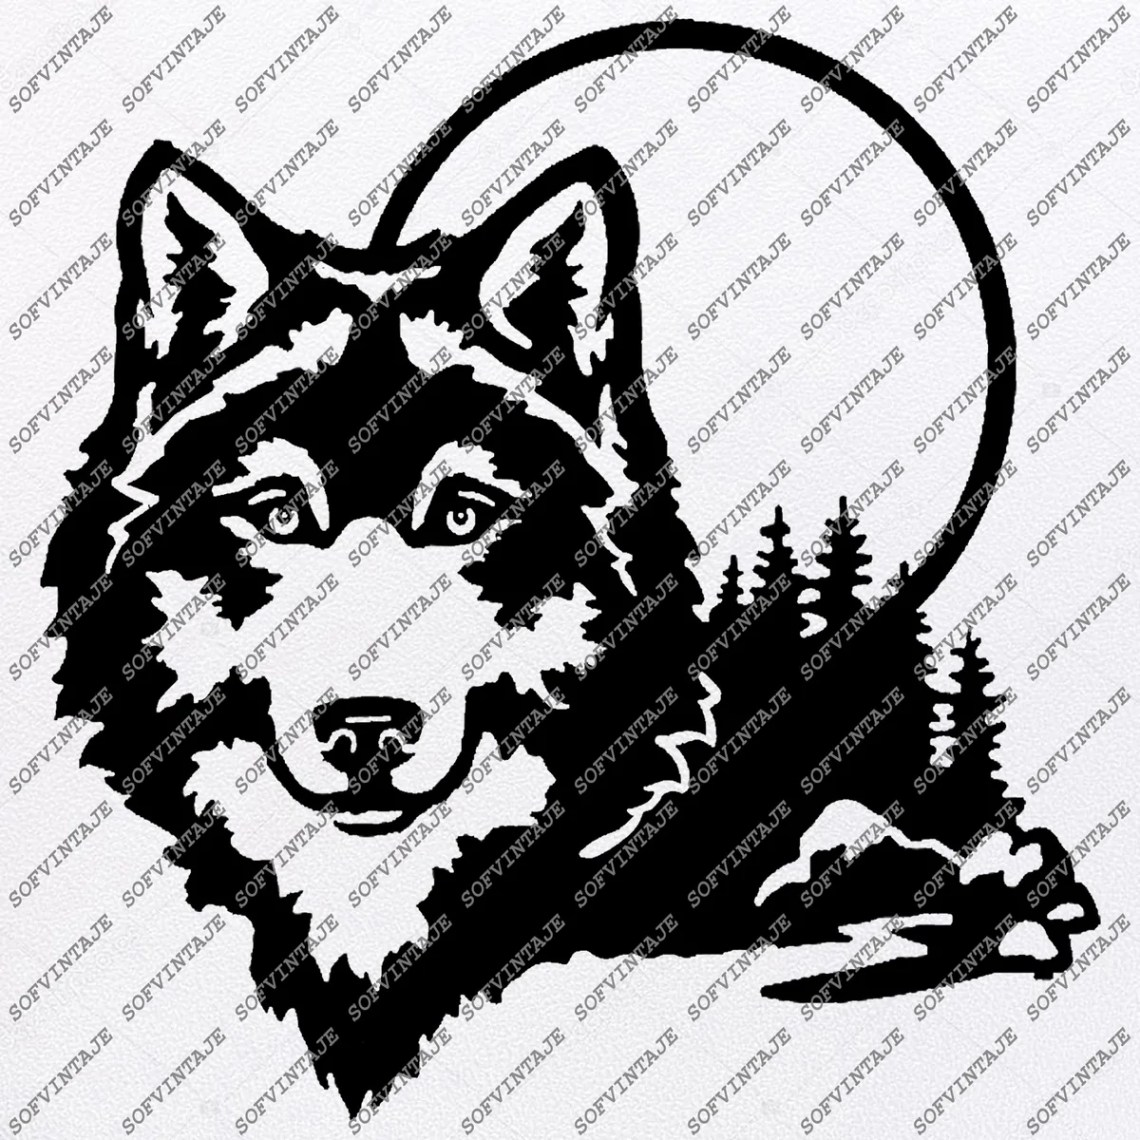 Download Wolf Svg Files - Wolf Silhouette - Animal Svg - Wolf Png ...